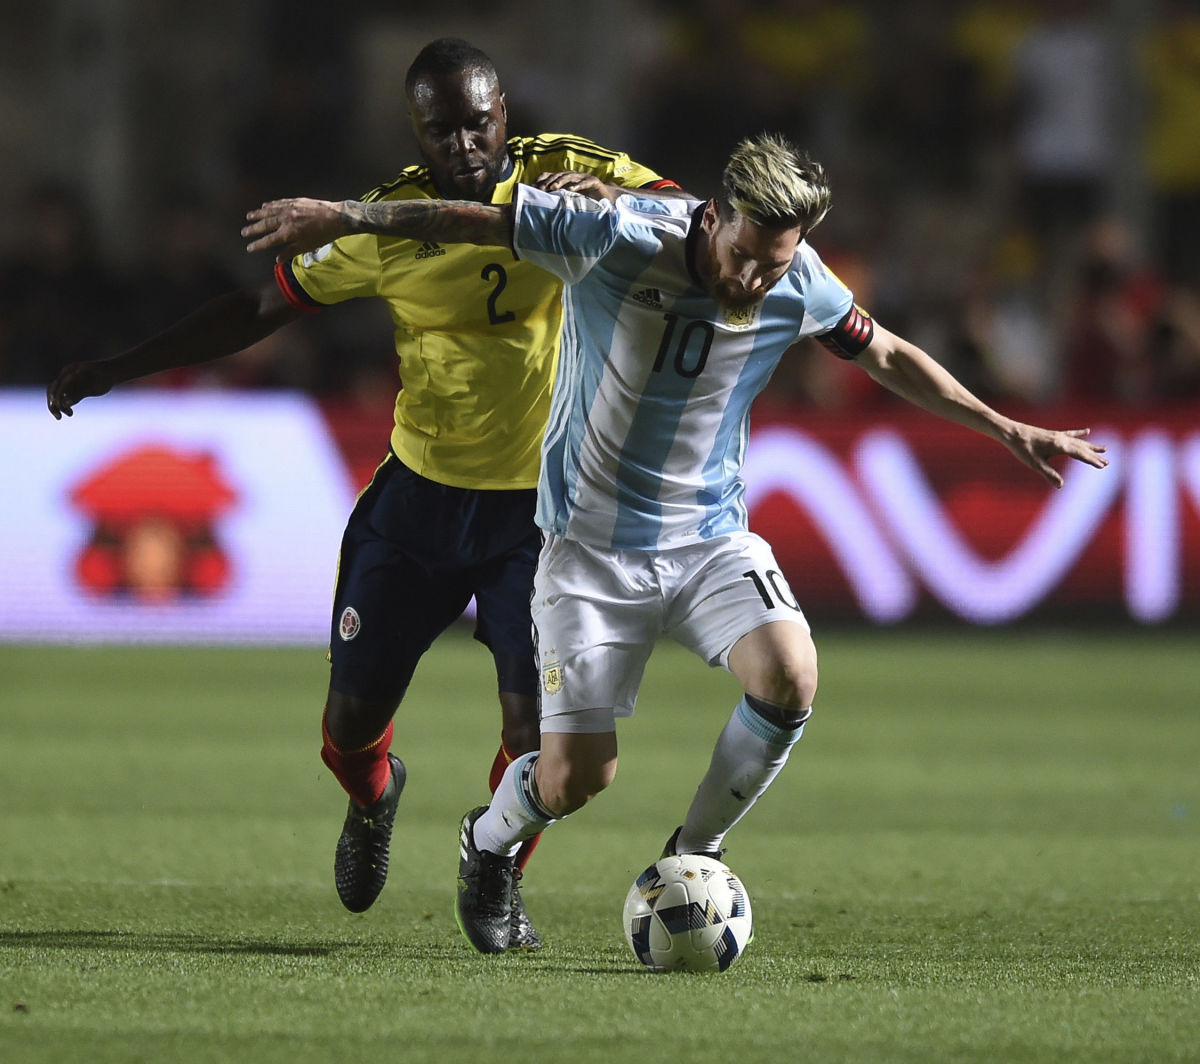 argentina-v-colombia-fifa-2018-world-cup-qualifiers-5cf63d856796b05f73000001.jpg